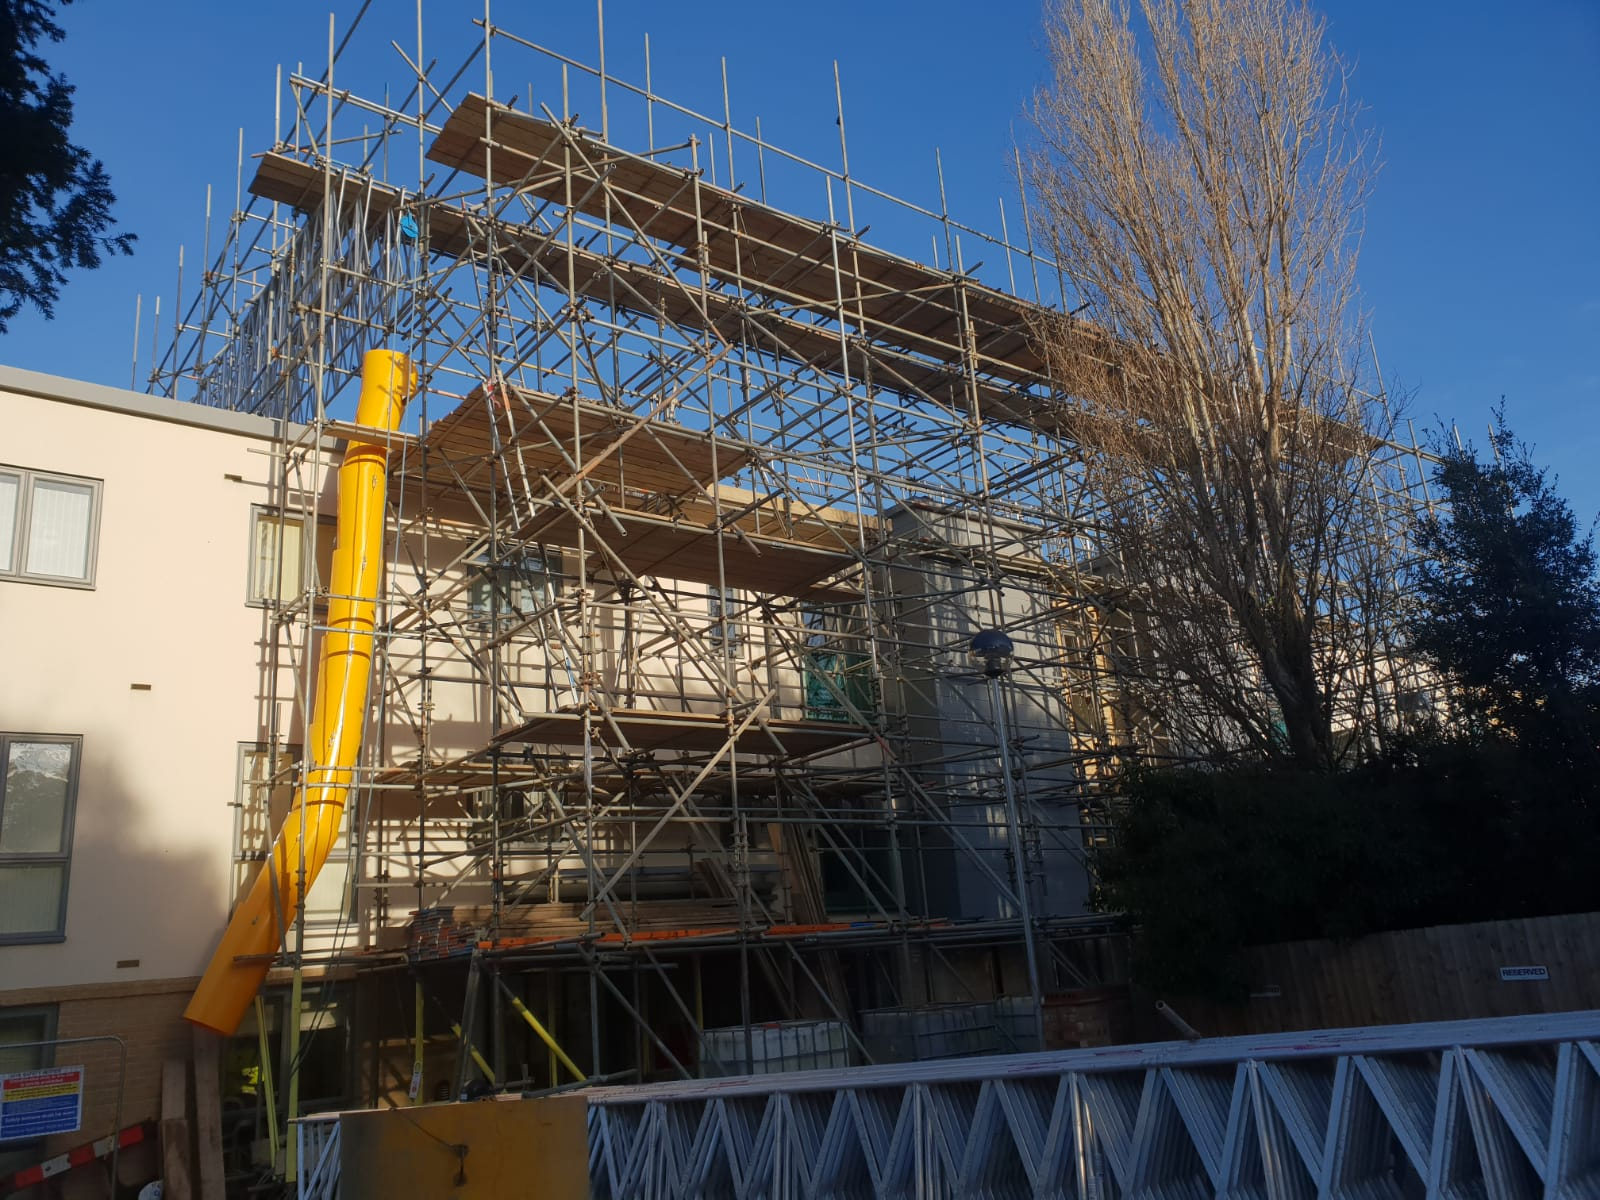 Earls Scaffolding - Access & Temporary Roof Scaffolding - Huntingdon Care Home - Industrial Scaffolding v14